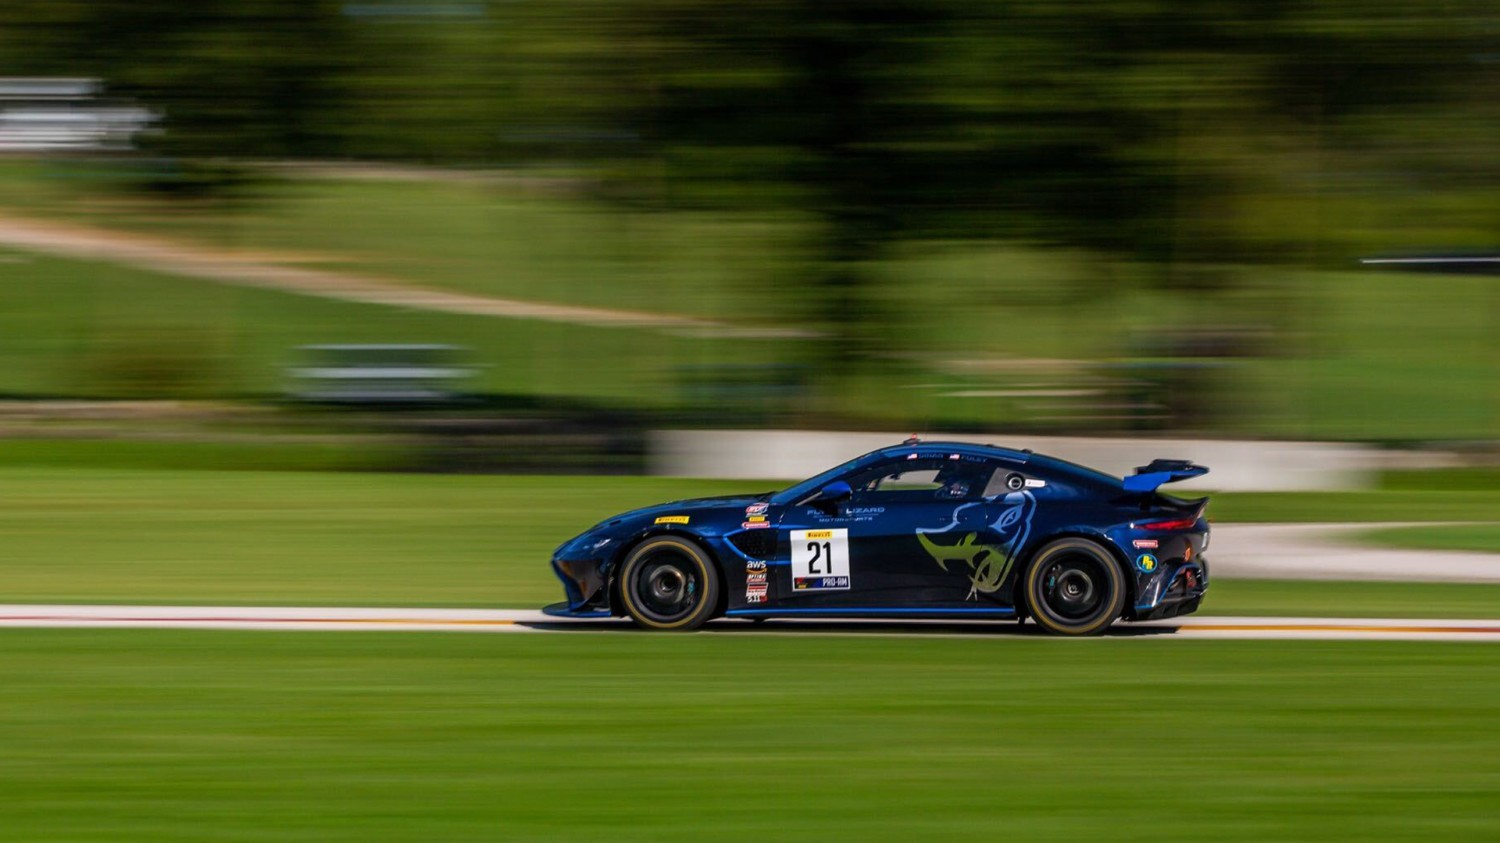 Foley/Dinan Conquer Pirelli GT4 America SprintX Field To Win Race 2 At Road America